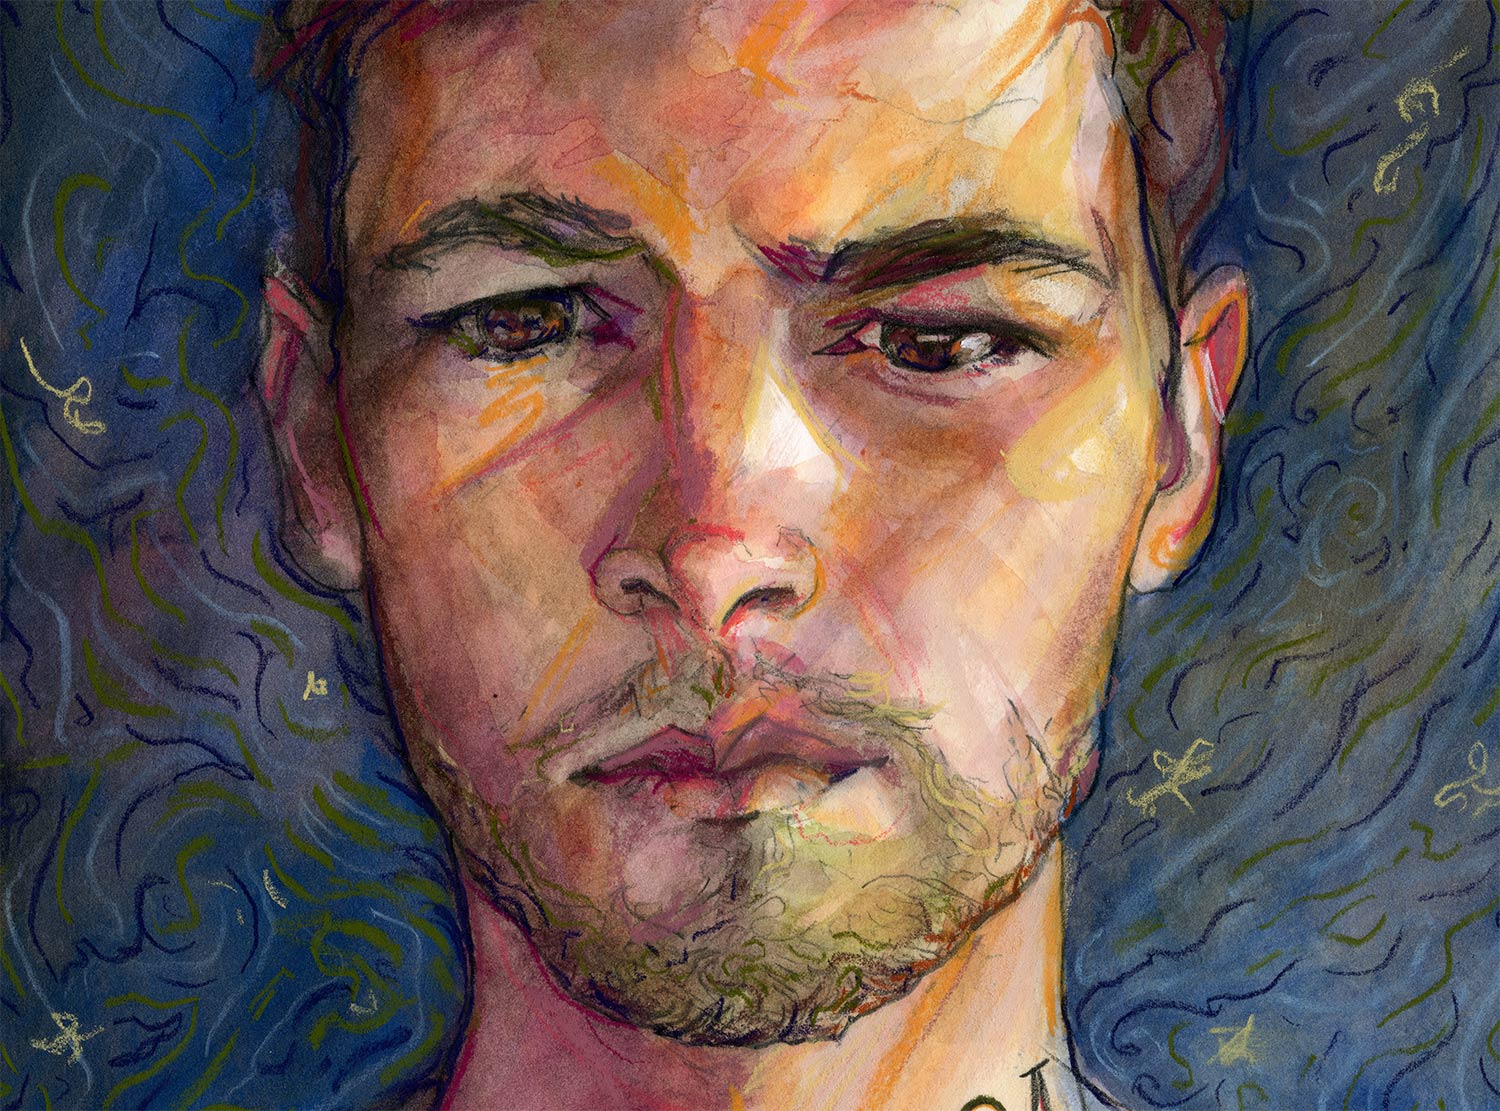 Close up of Artist Danny roberts birthday self portrait for his 34th birthday